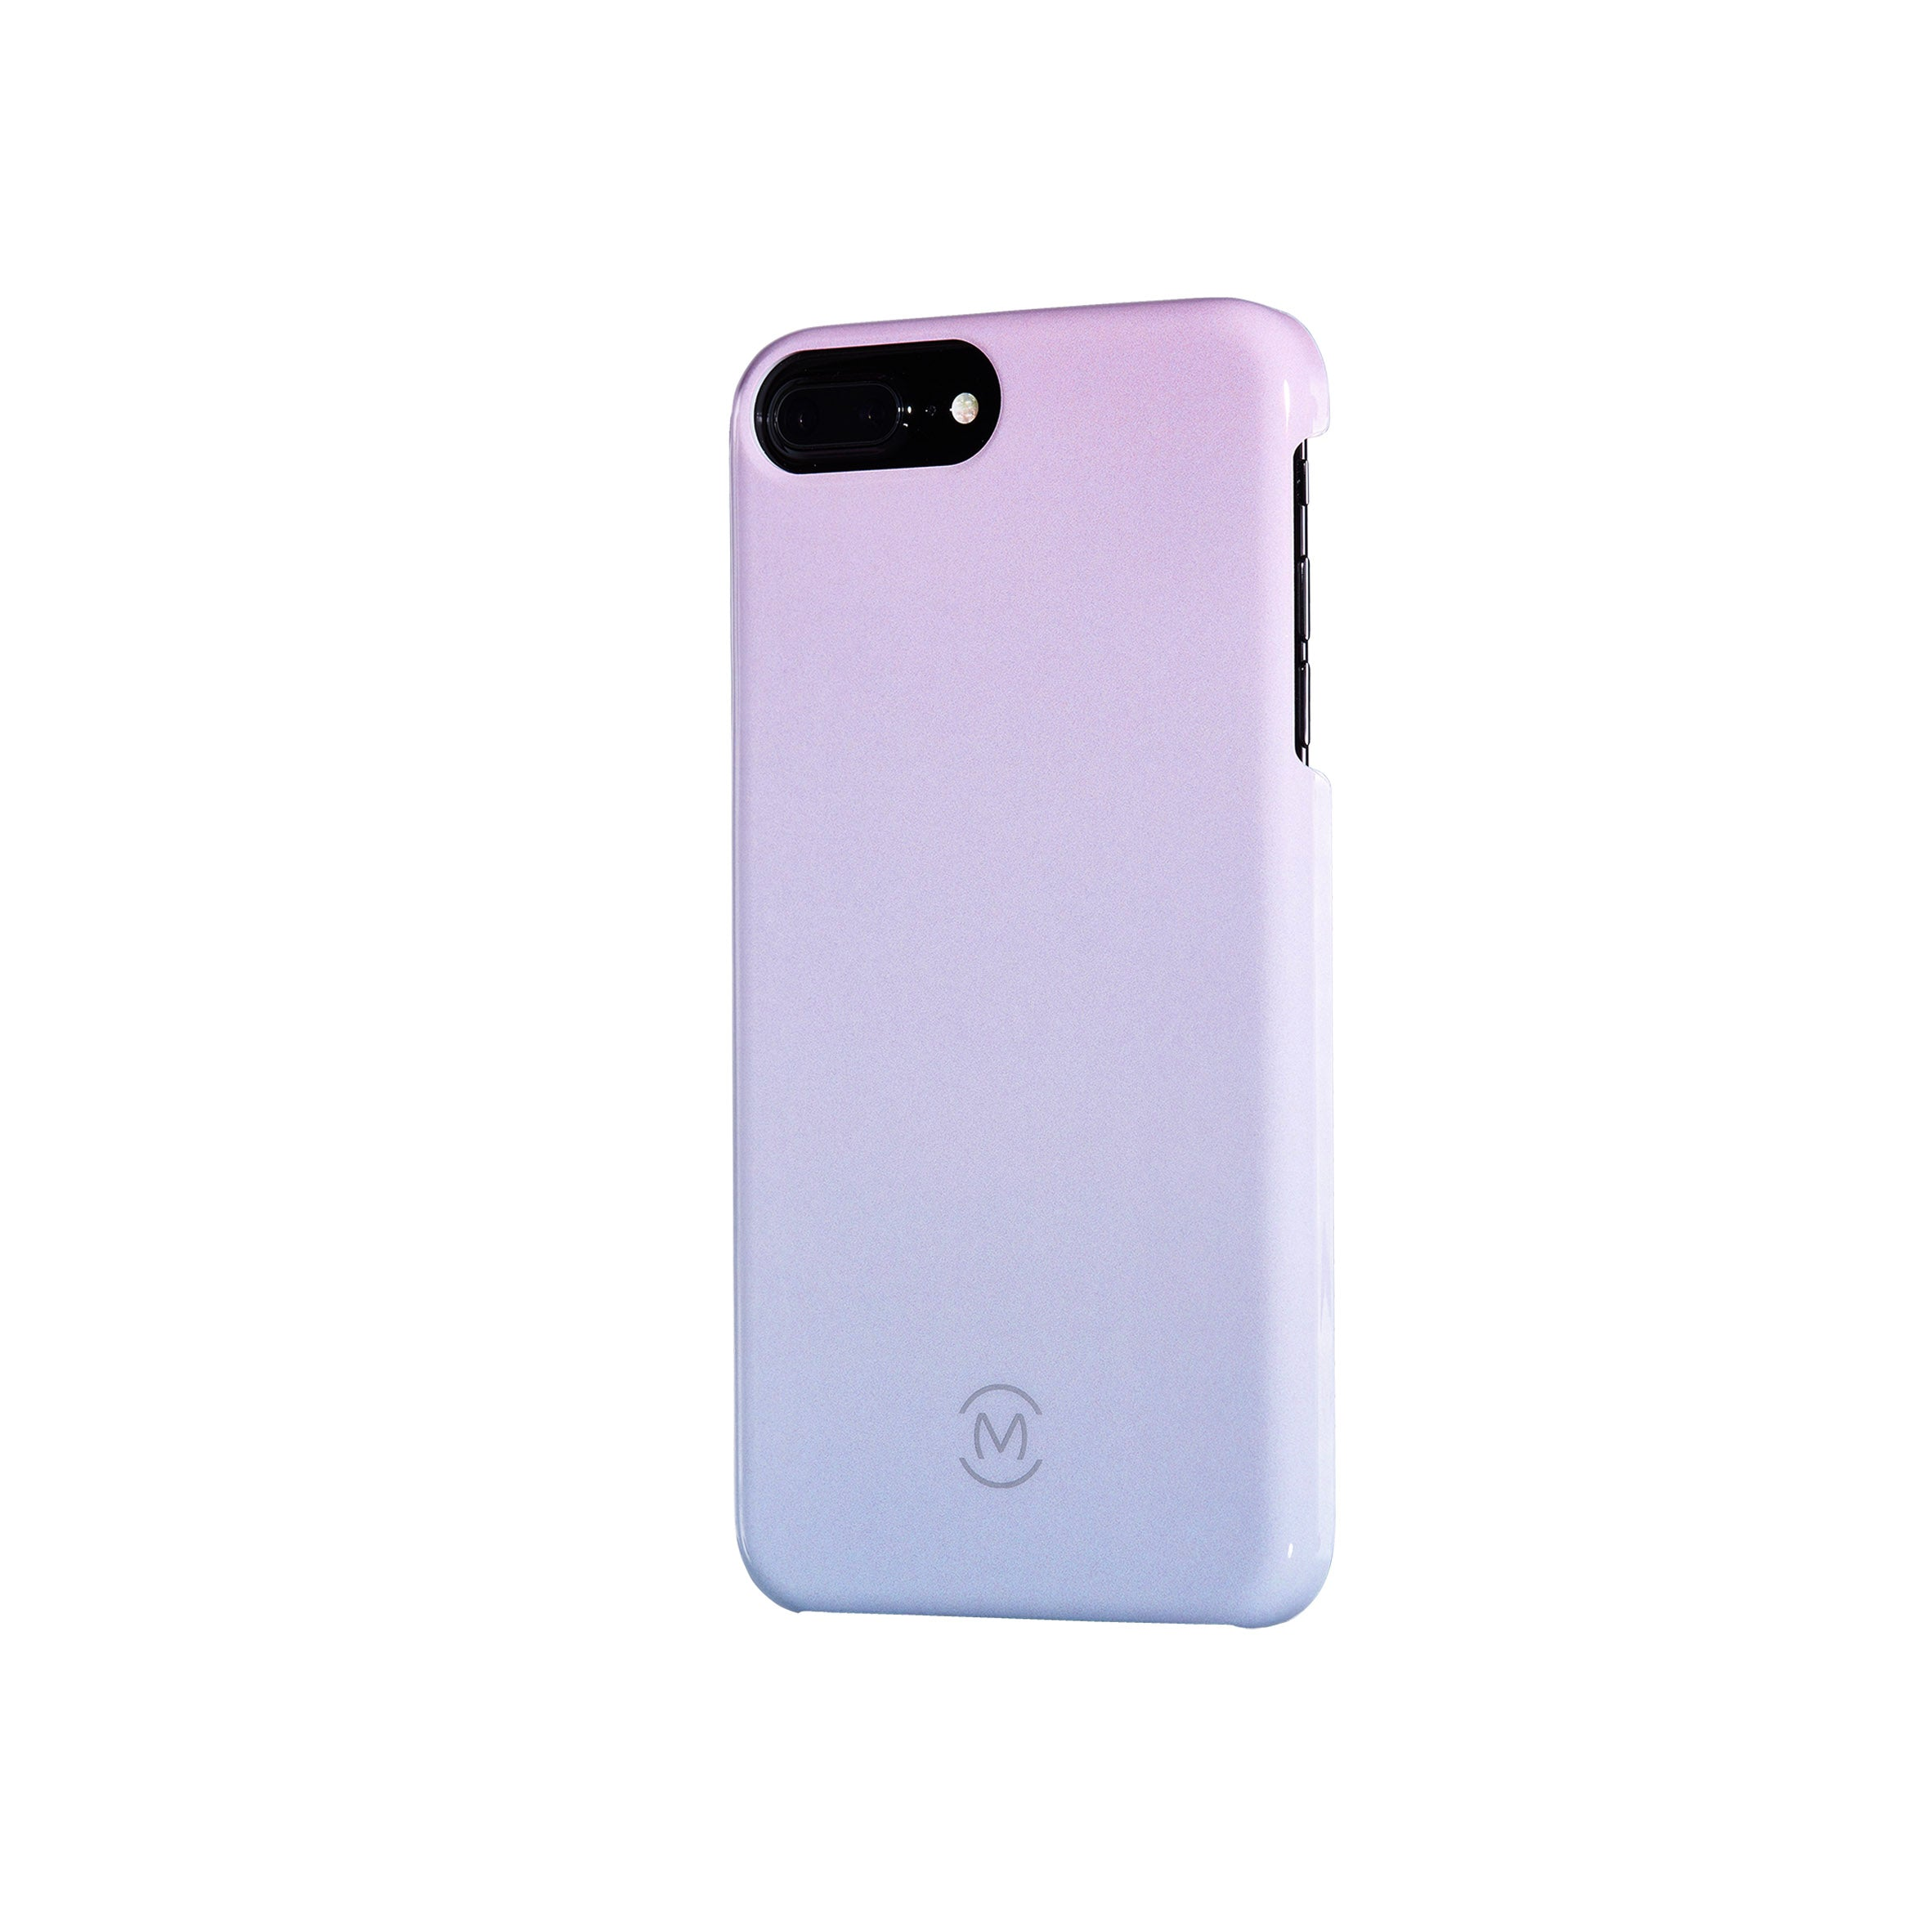 Pink-Blue Gradient Arctic Dusk Recyclable Phone Case by Movement for iPhone 8 Plus, iPhone 7 Plus, iPhone 6s Plus, and iPhone 6 Plus (Right)